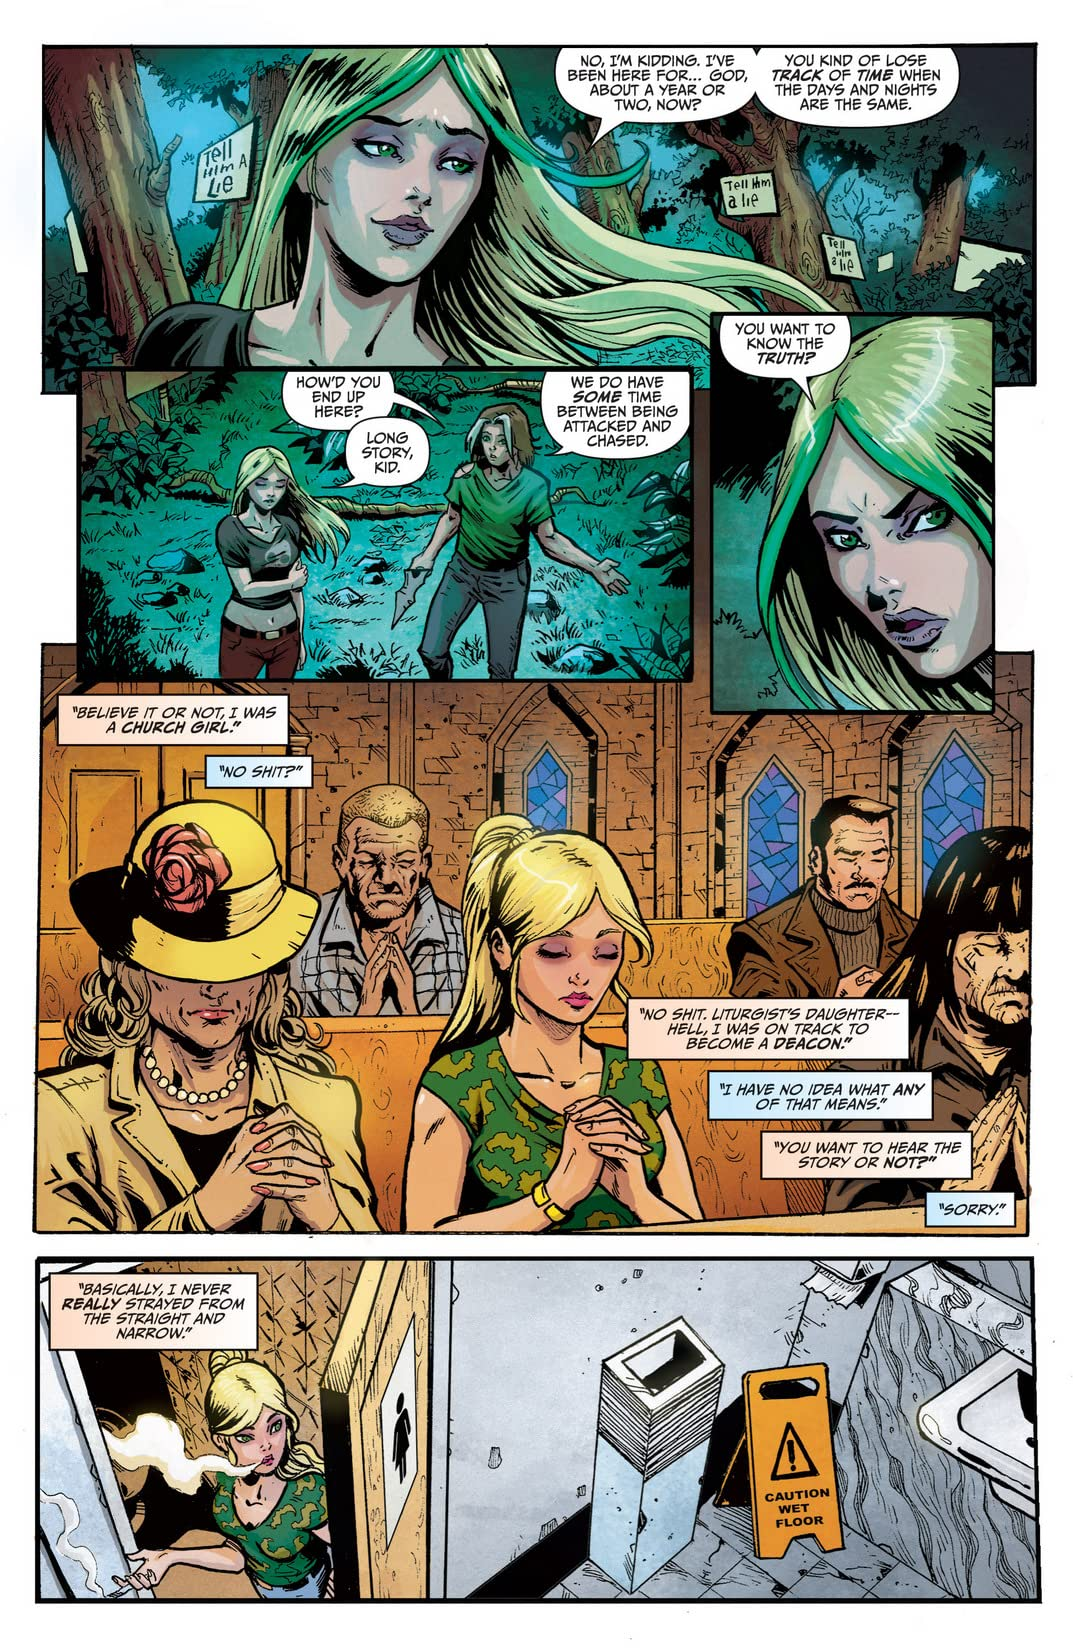 Wonderland: Through the Looking Glass #3 (of 5)